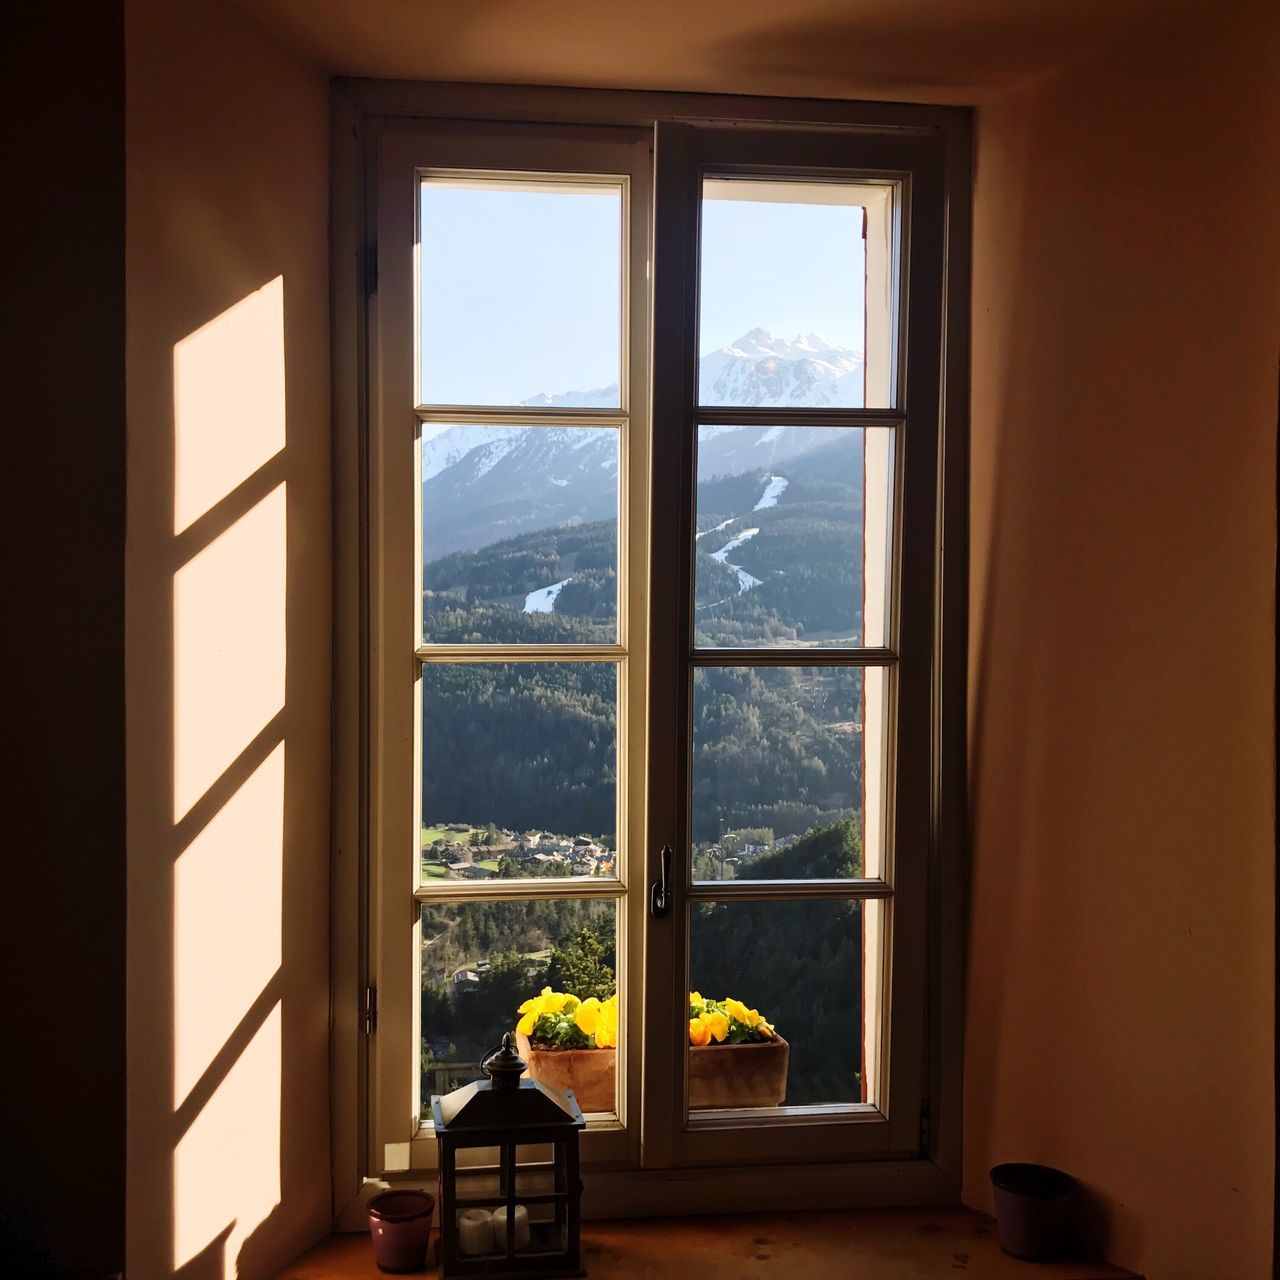 Window Indoors  Nature Scenics Day No People Sea Sunlight Sky Mountain Landscape Home Interior Looking Through Window Cityscape Beauty In Nature Built Structure Tree Water Architecture Close-up